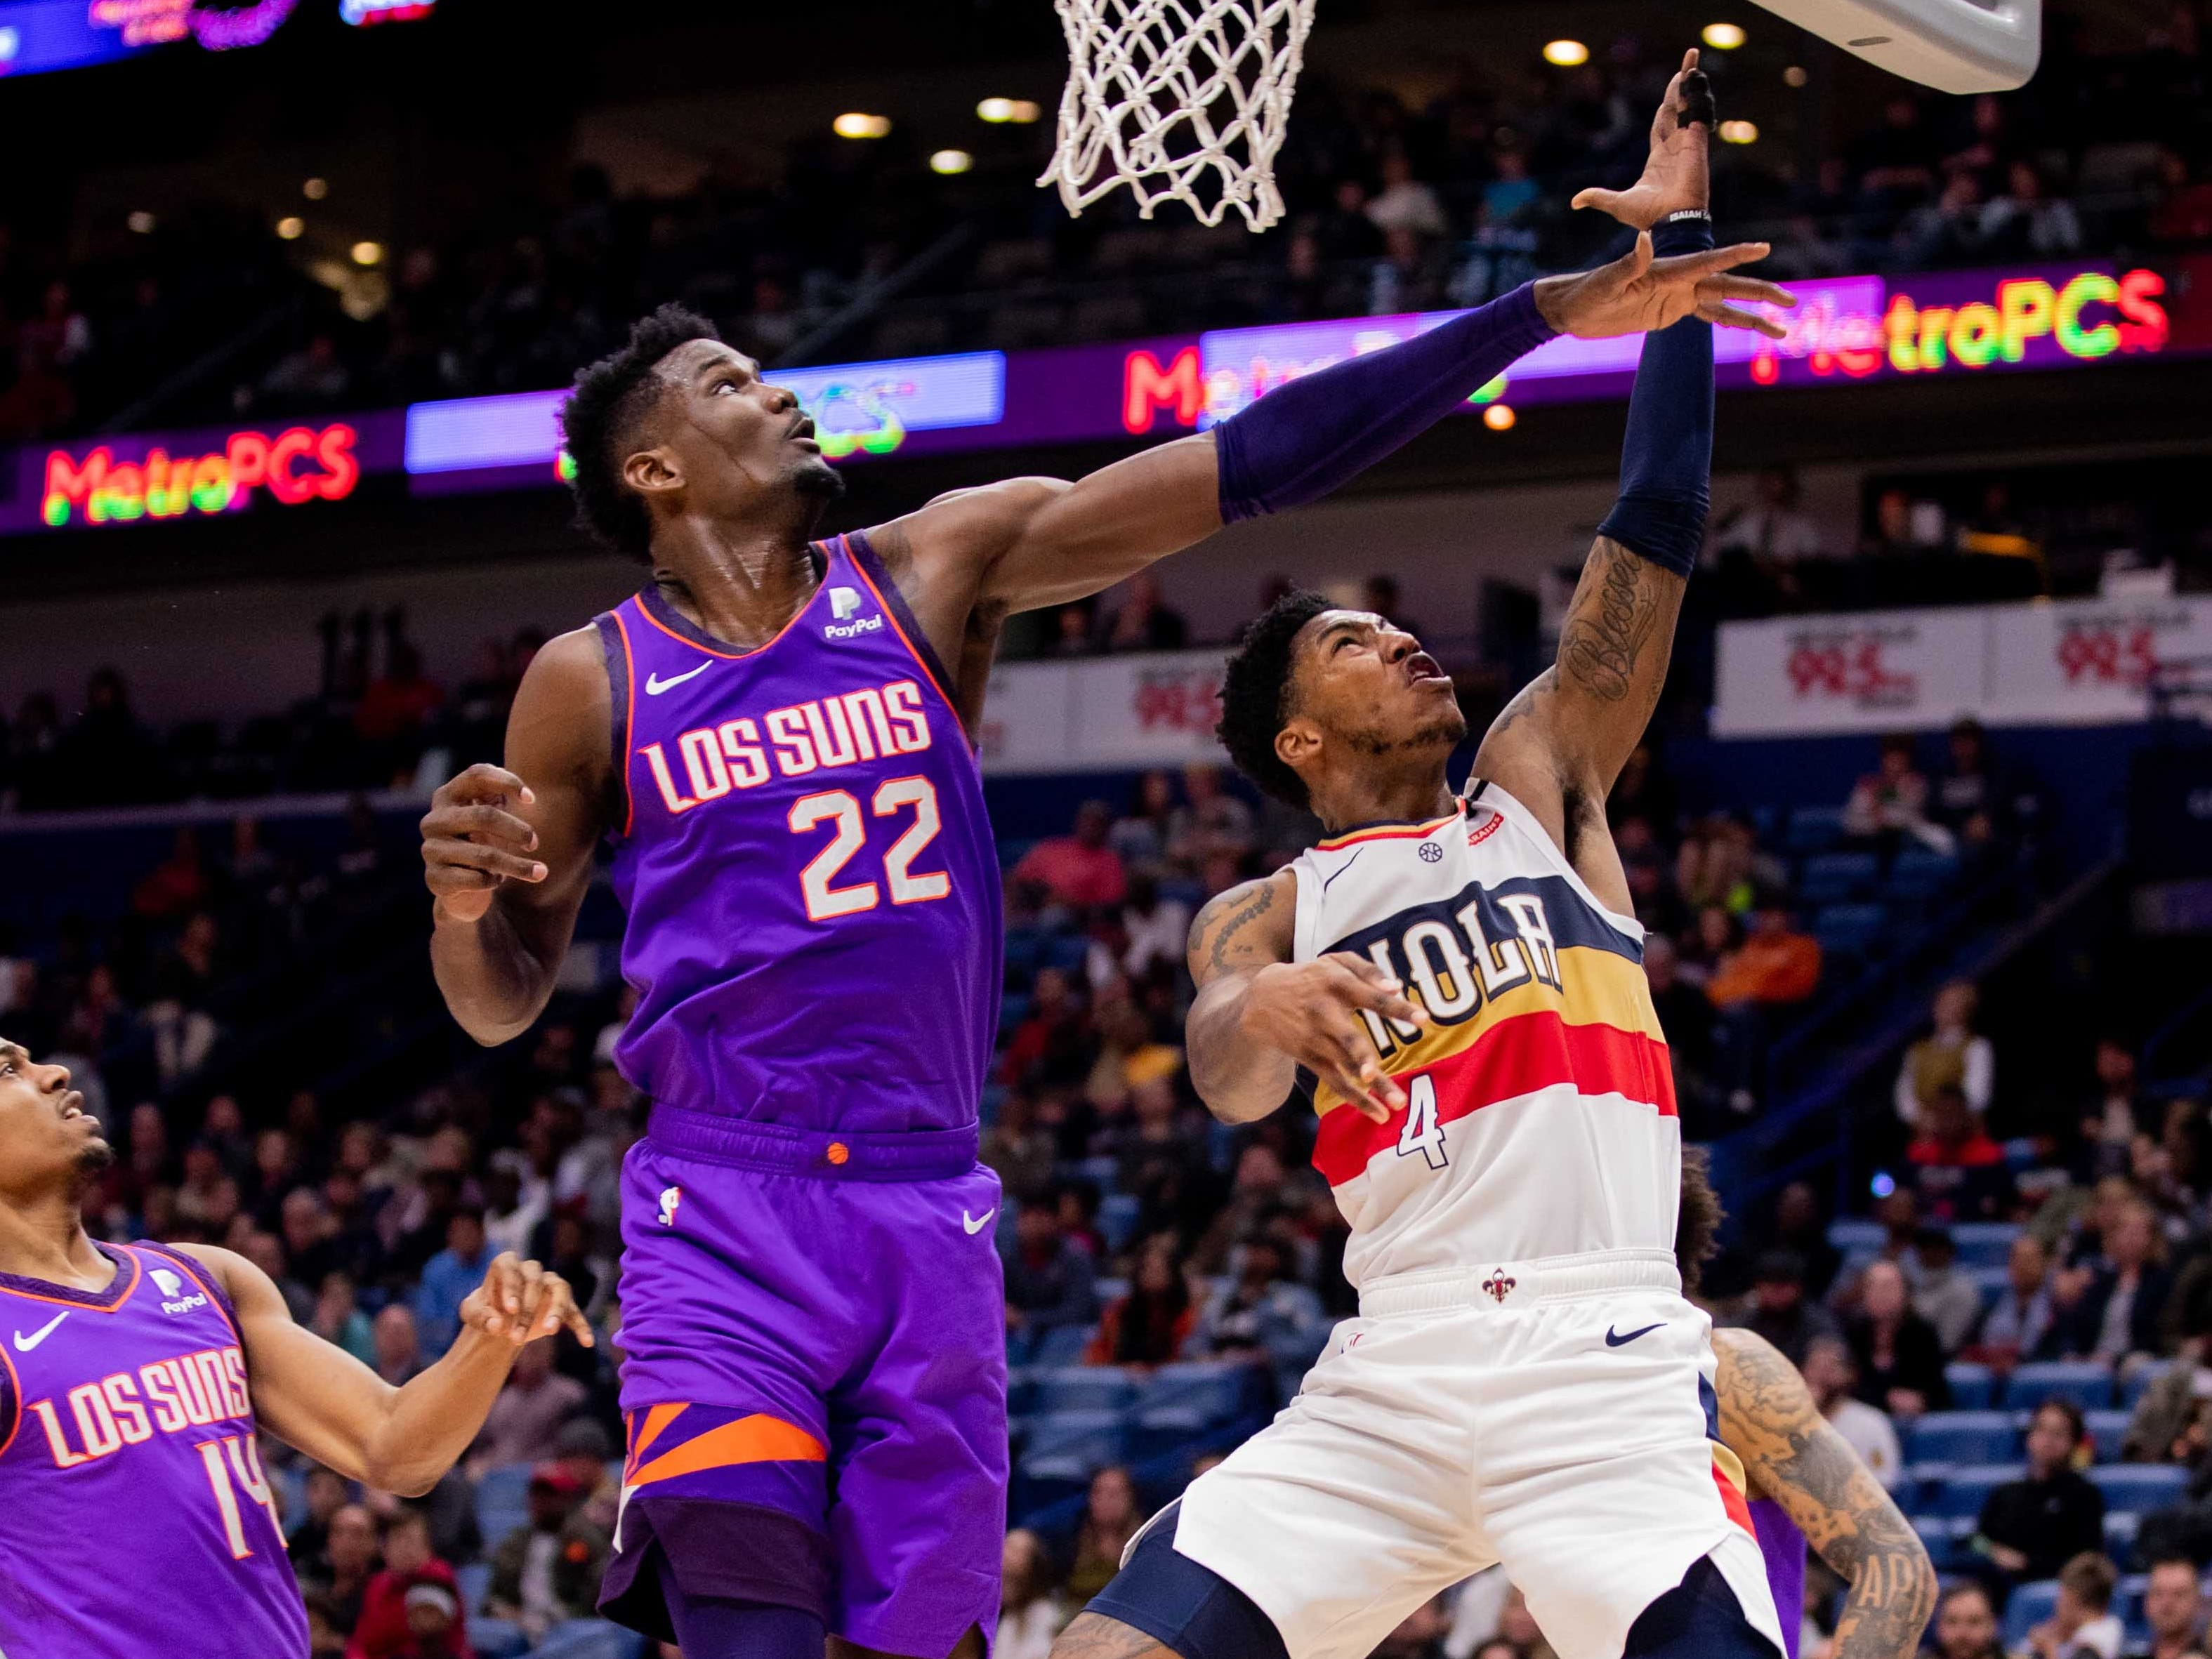 Mar 16, 2019; New Orleans, LA, USA; New Orleans Pelicans guard Elfrid Payton (4) drives to the basket against Phoenix Suns guard De'Anthony Melton (14) during the second half at Smoothie King Center.